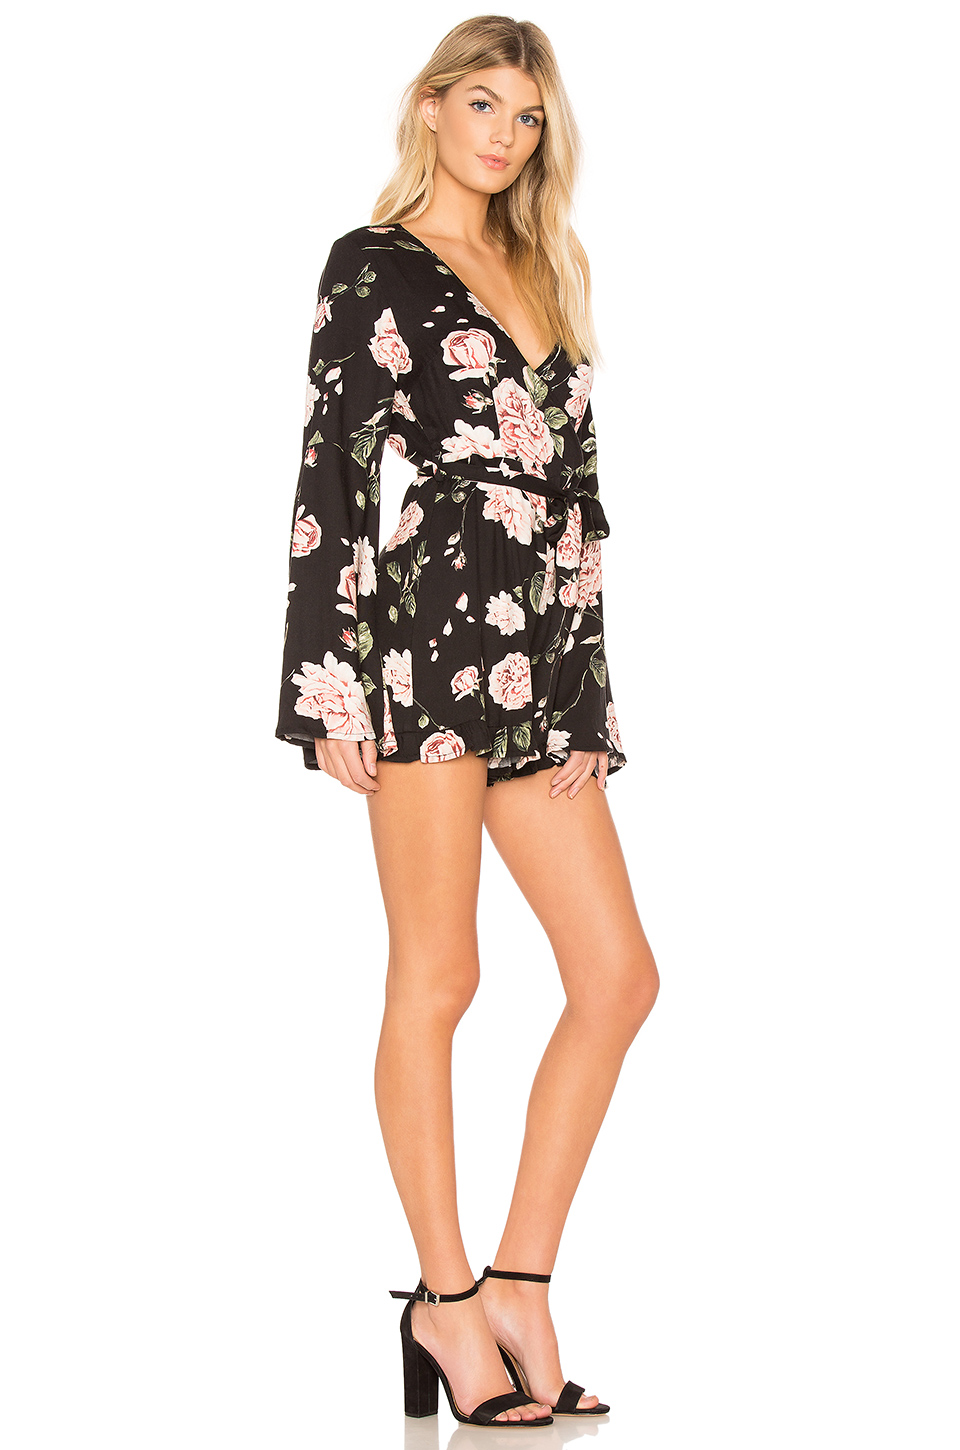 92e68156290 Buy Original Somedays Lovin Breaking Darkness Playsuit at ...